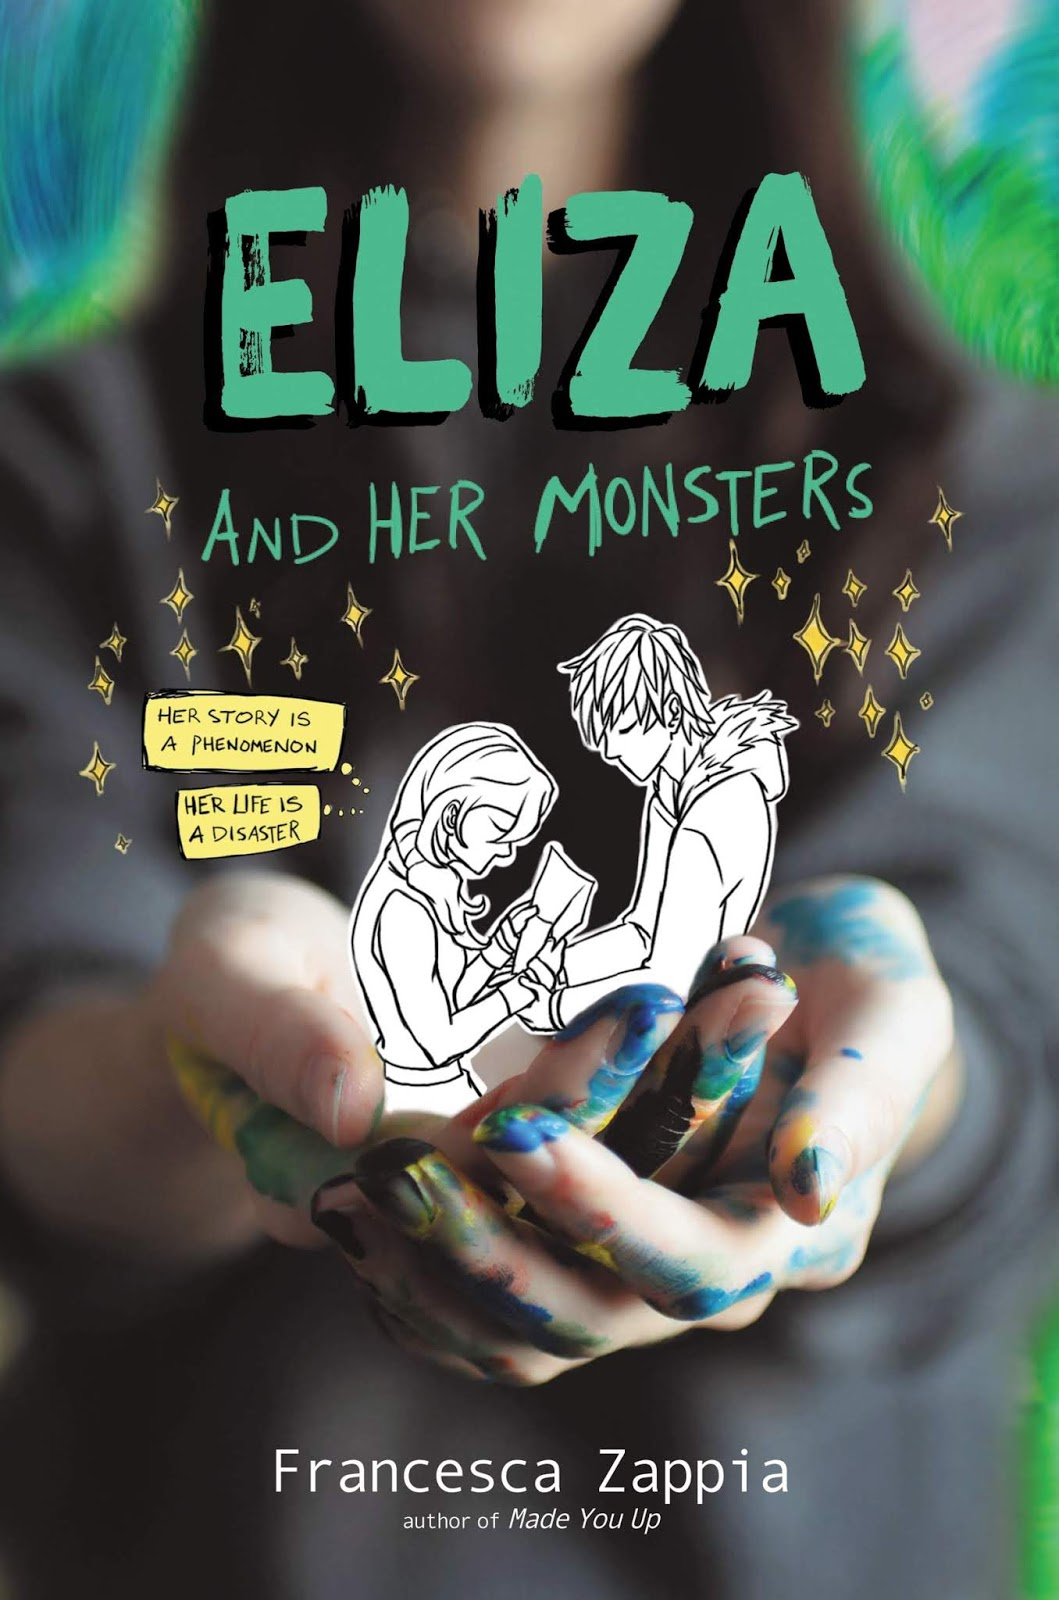 Eliza and Her Monsters by Francesca Zappia | Superior Young Adult Fiction | Book Review